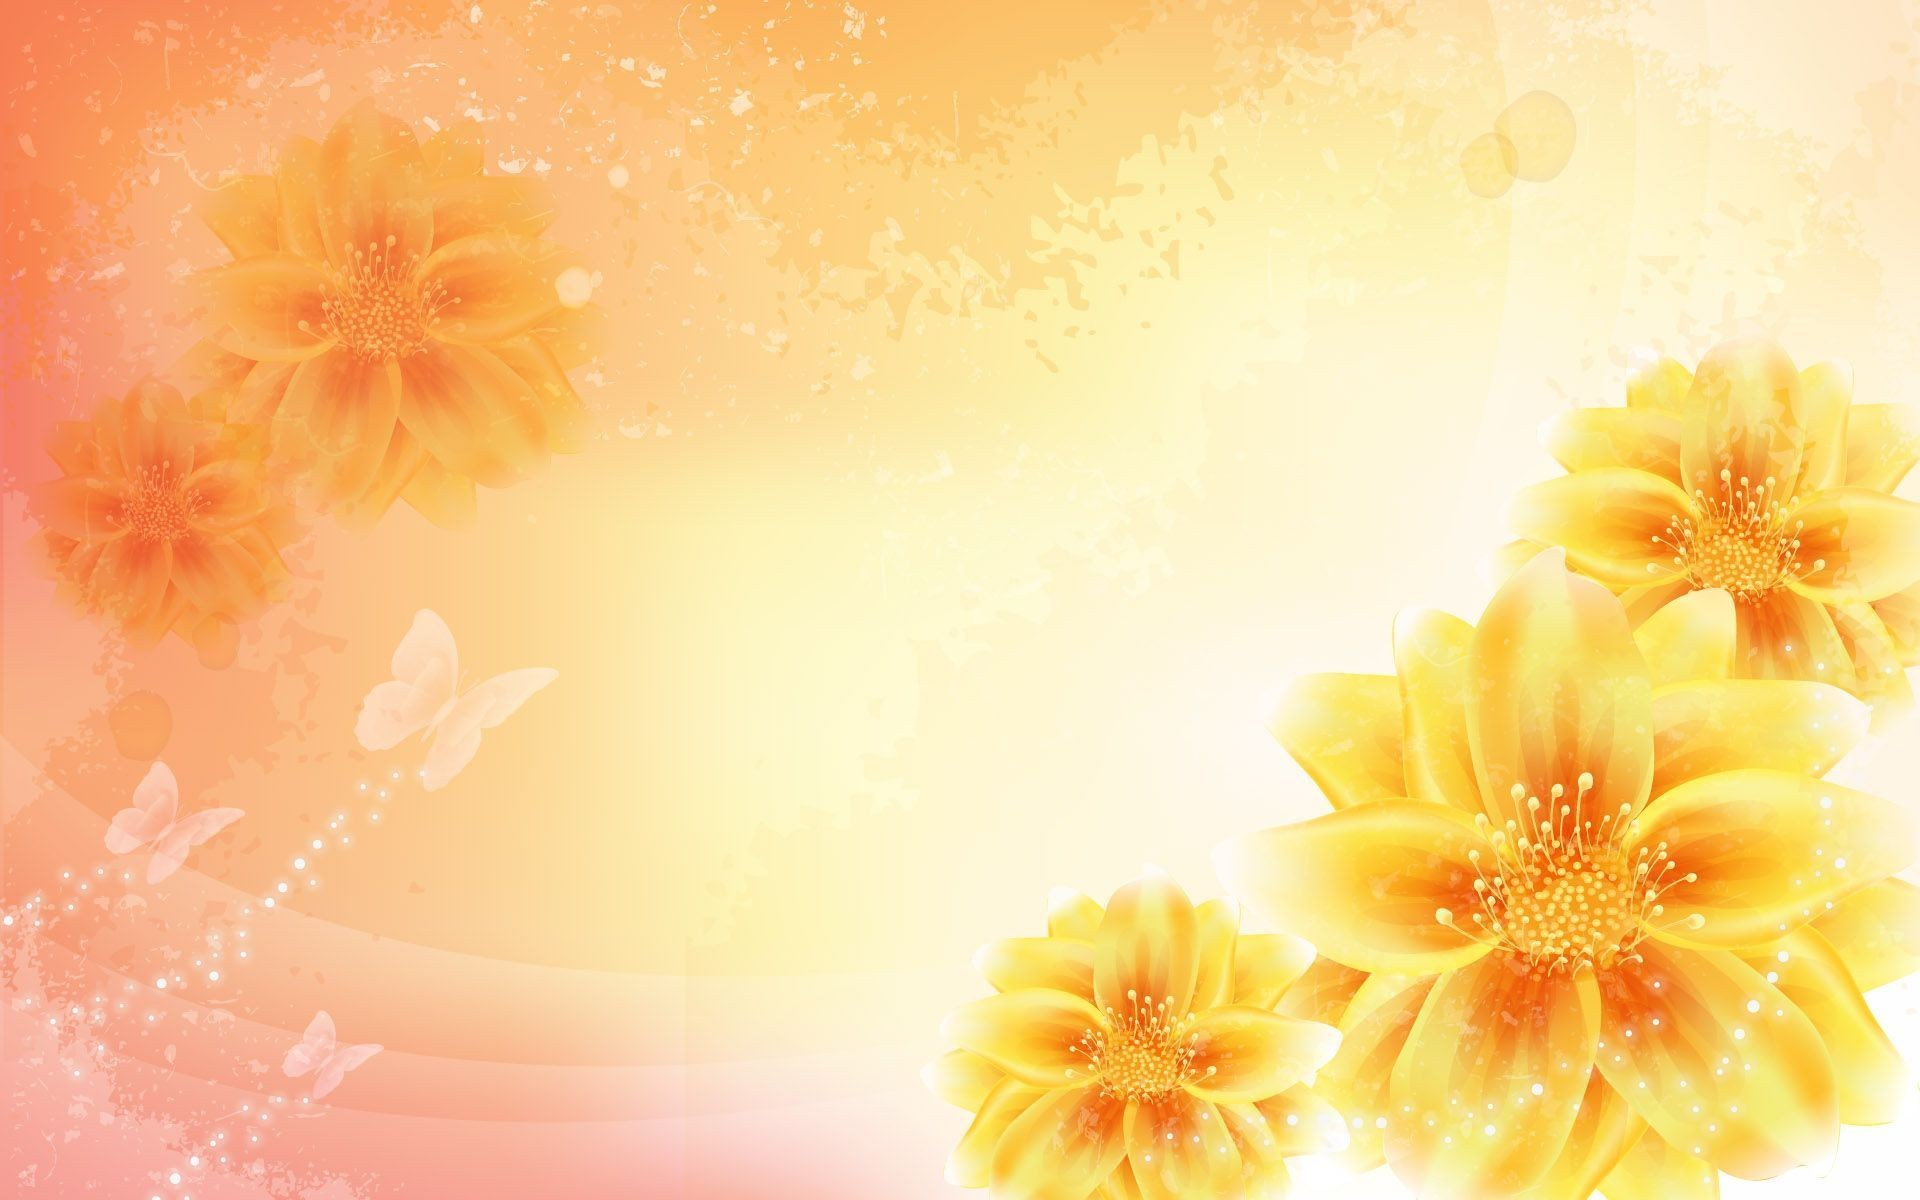 Light Yellow Background Download Free Awesome High Resolution